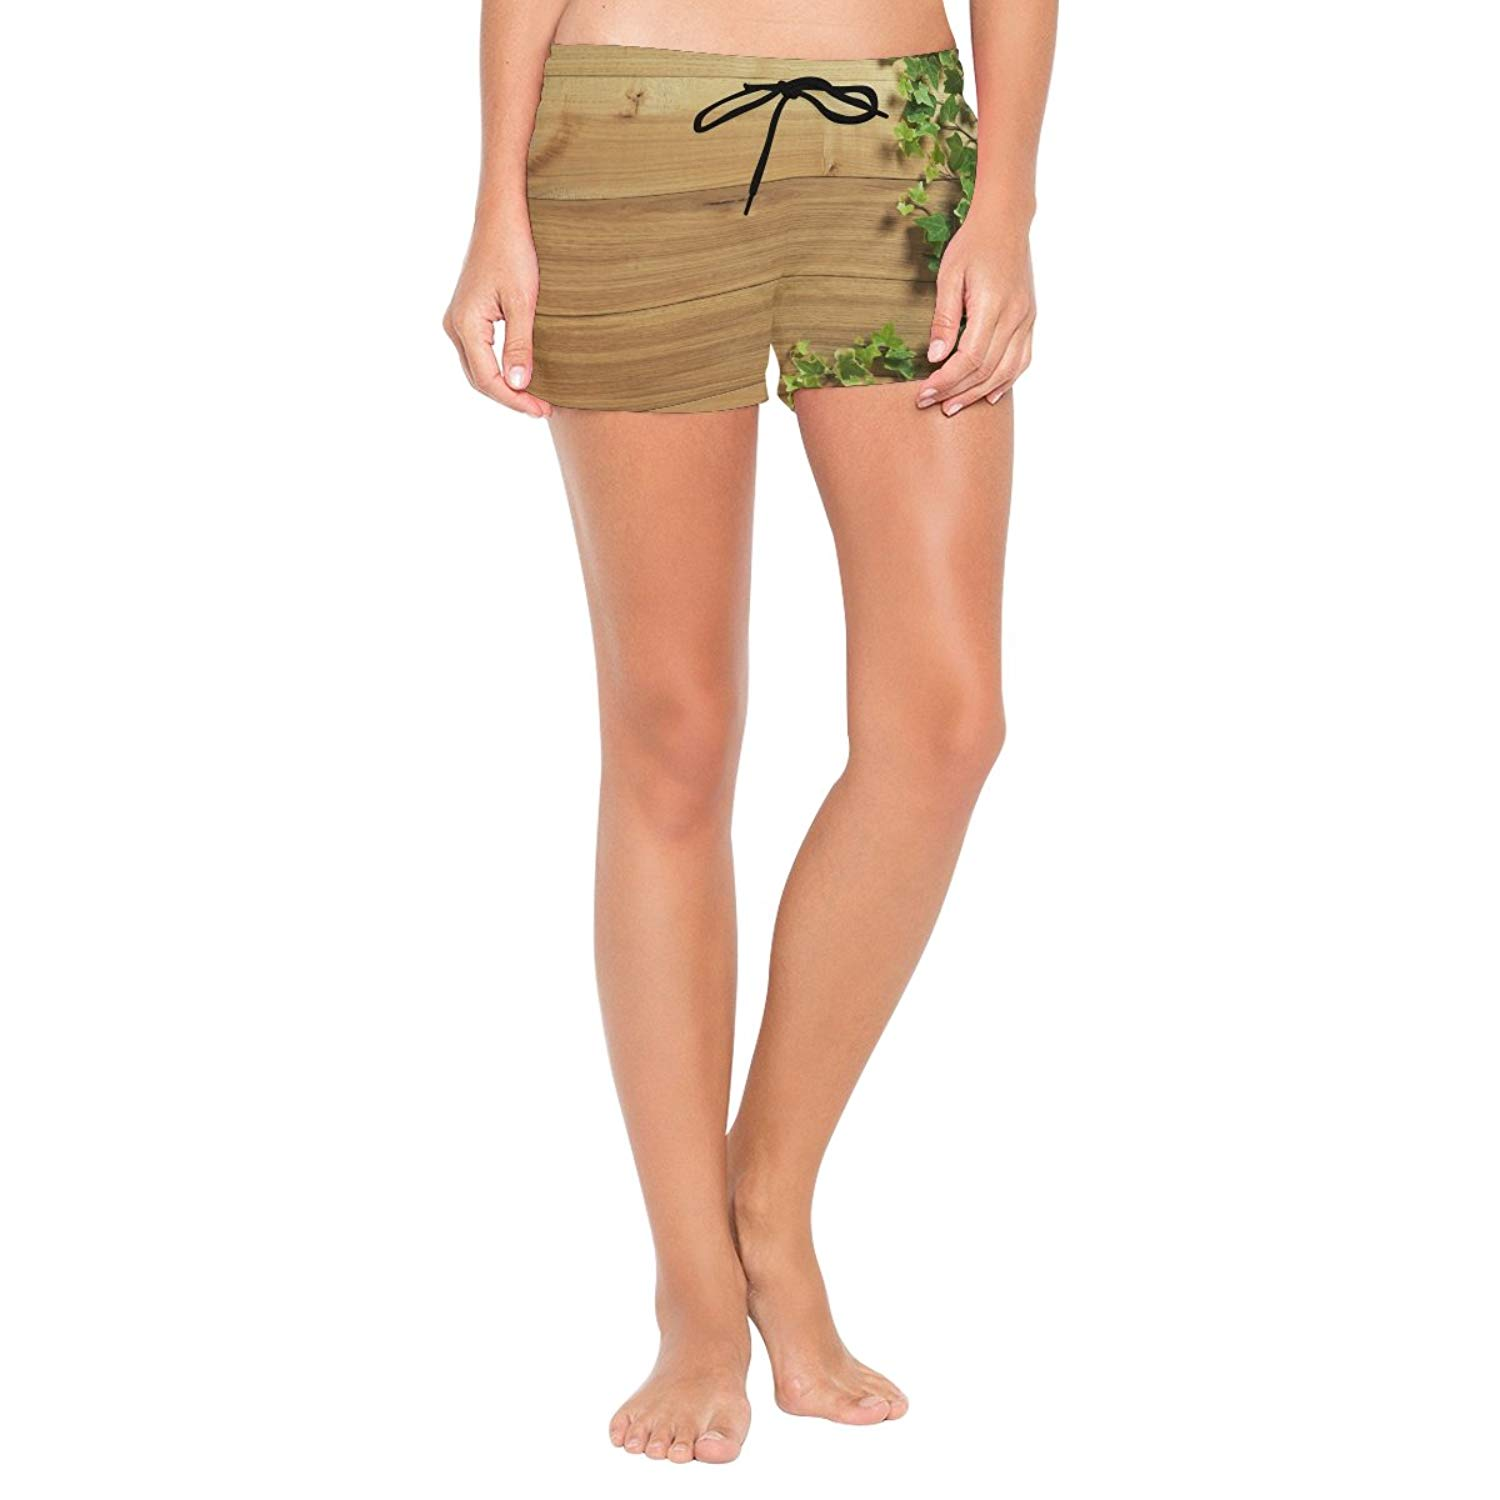 XiangHeFu Women's Beach Shorts Wooden Board Covered in Ivy Swim Trunk with Pockets